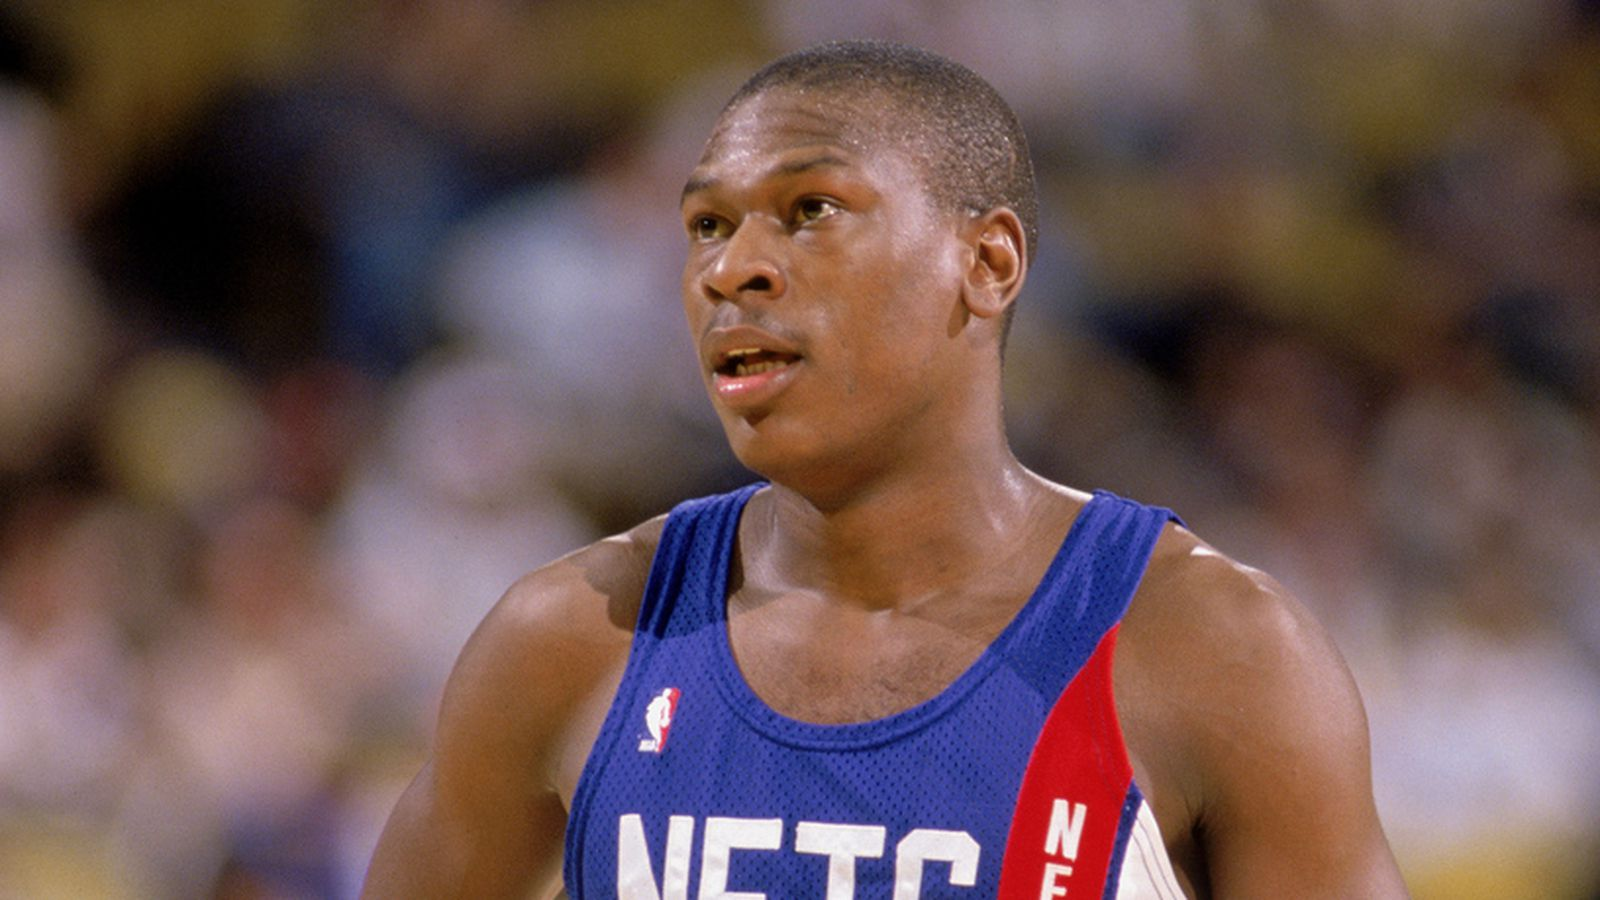 mookie blaylock on life support after car crash